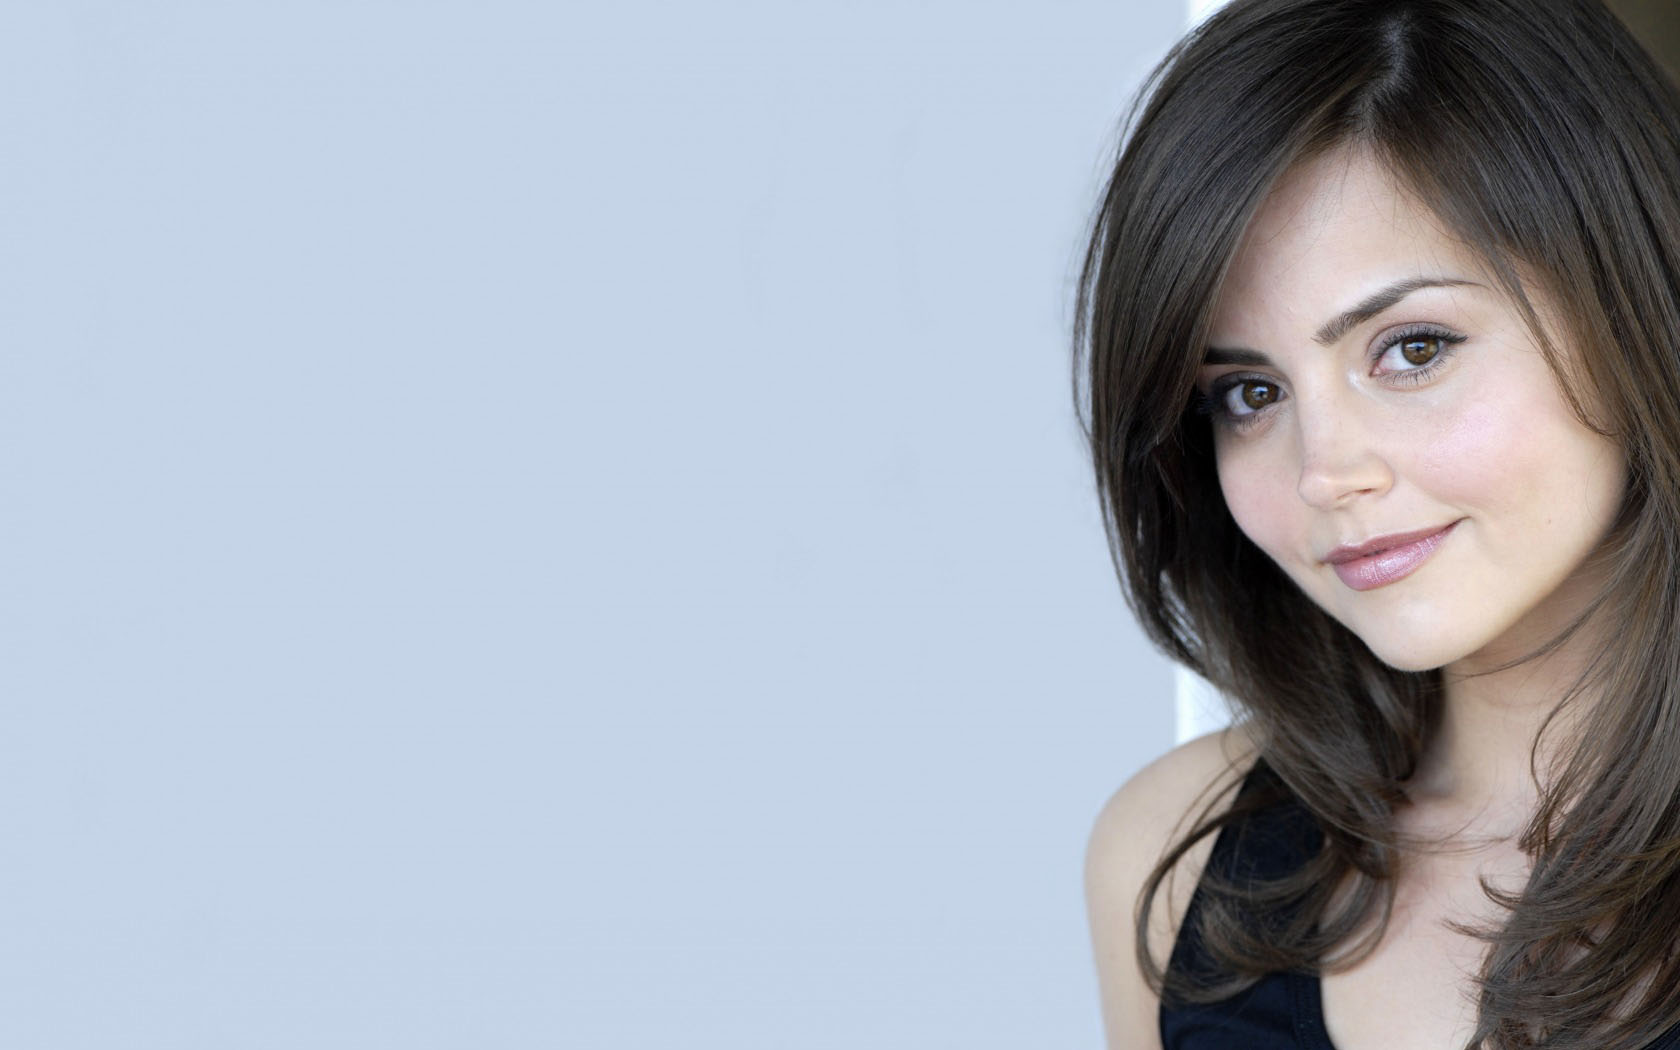 1680x1050 - Jenna-Louise Coleman Wallpapers 13